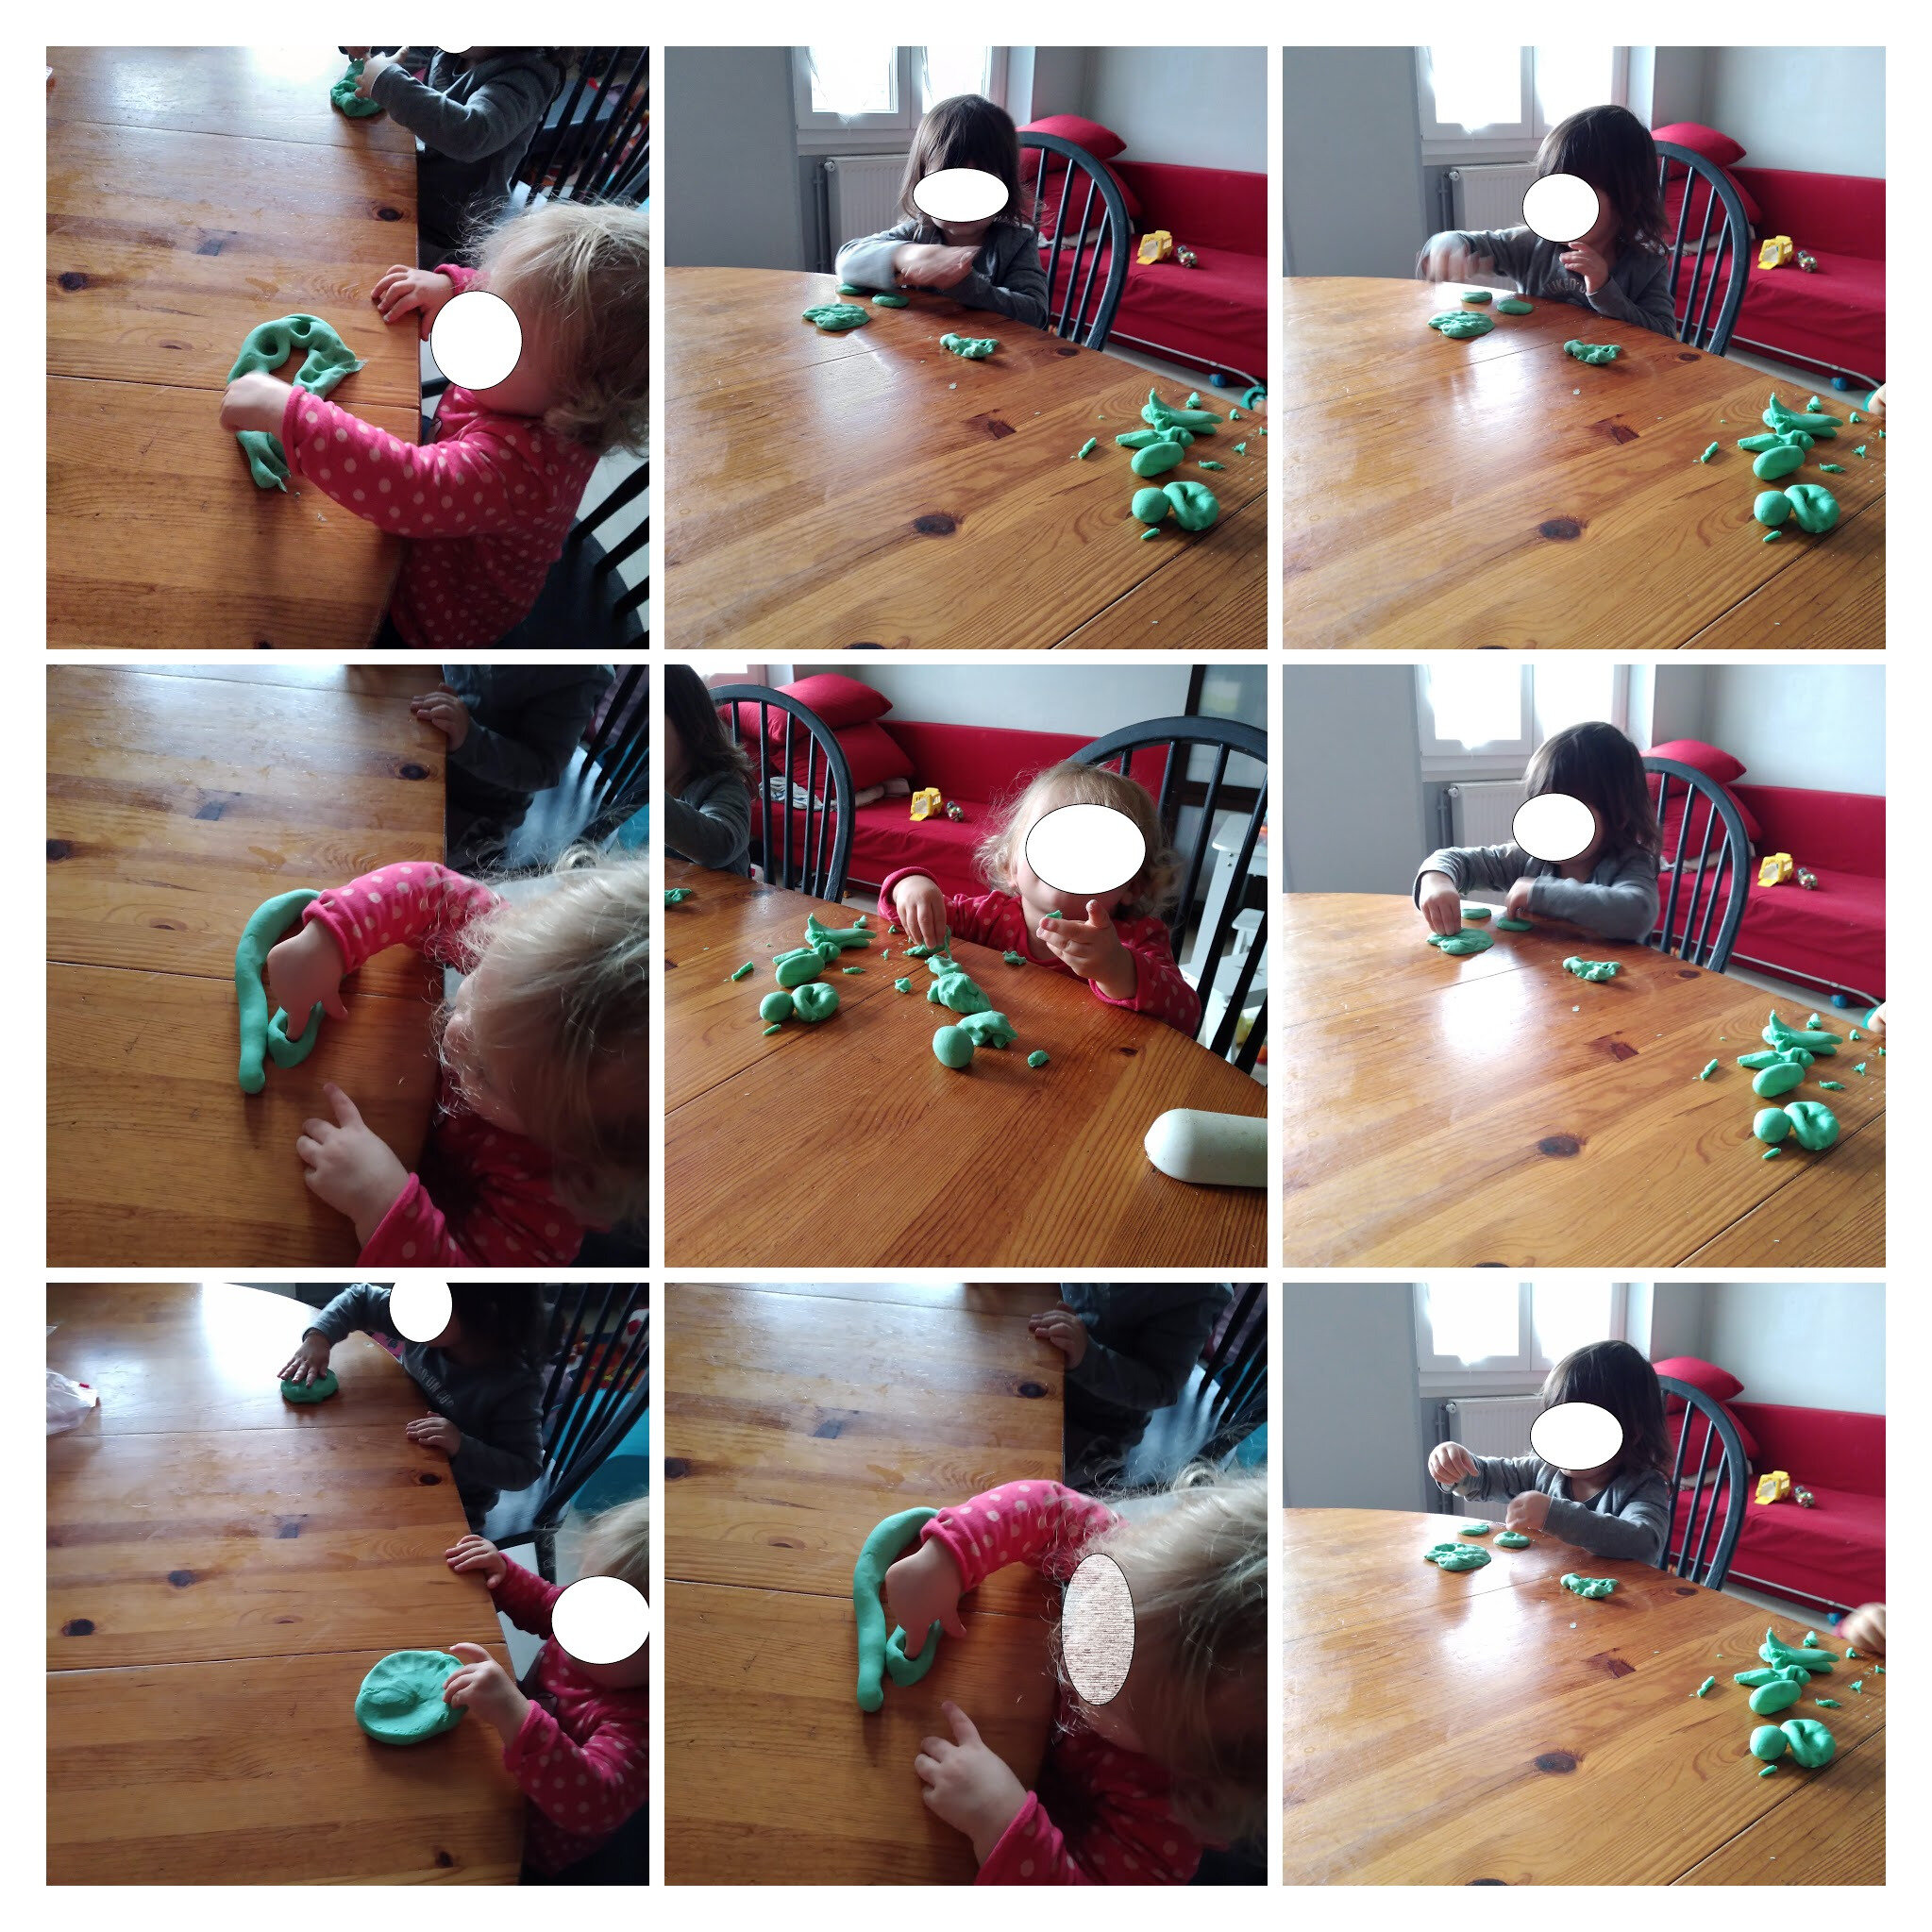 IMG_20191106_104901496-COLLAGE